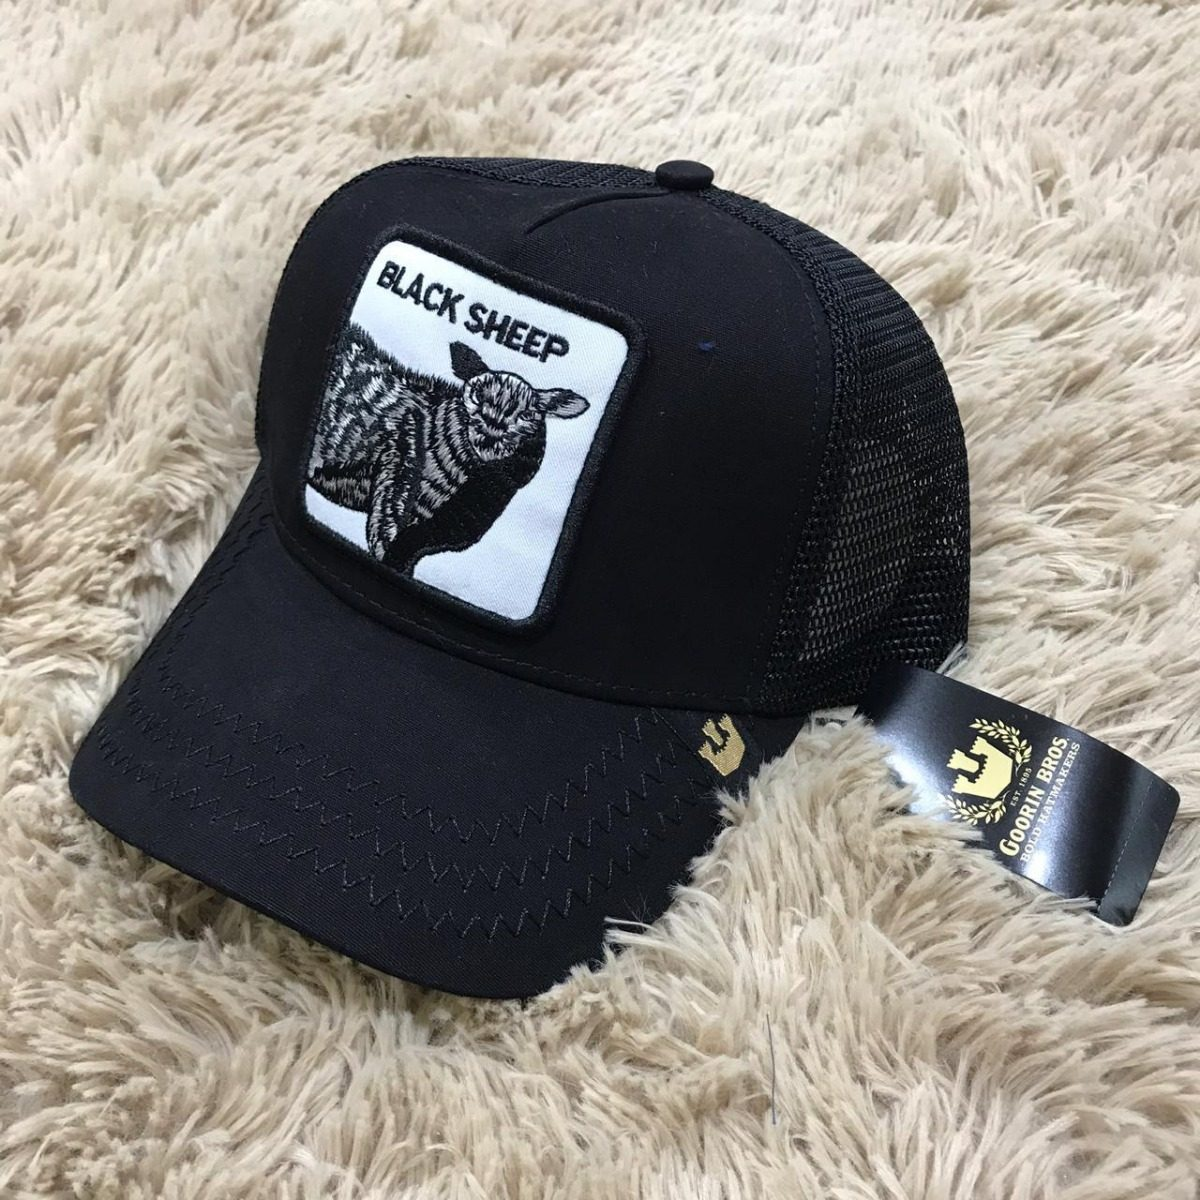 b54b42c3 Gorro Goorin Bros Black Sheep!!! - $ 2.000,00 en Mercado Libre